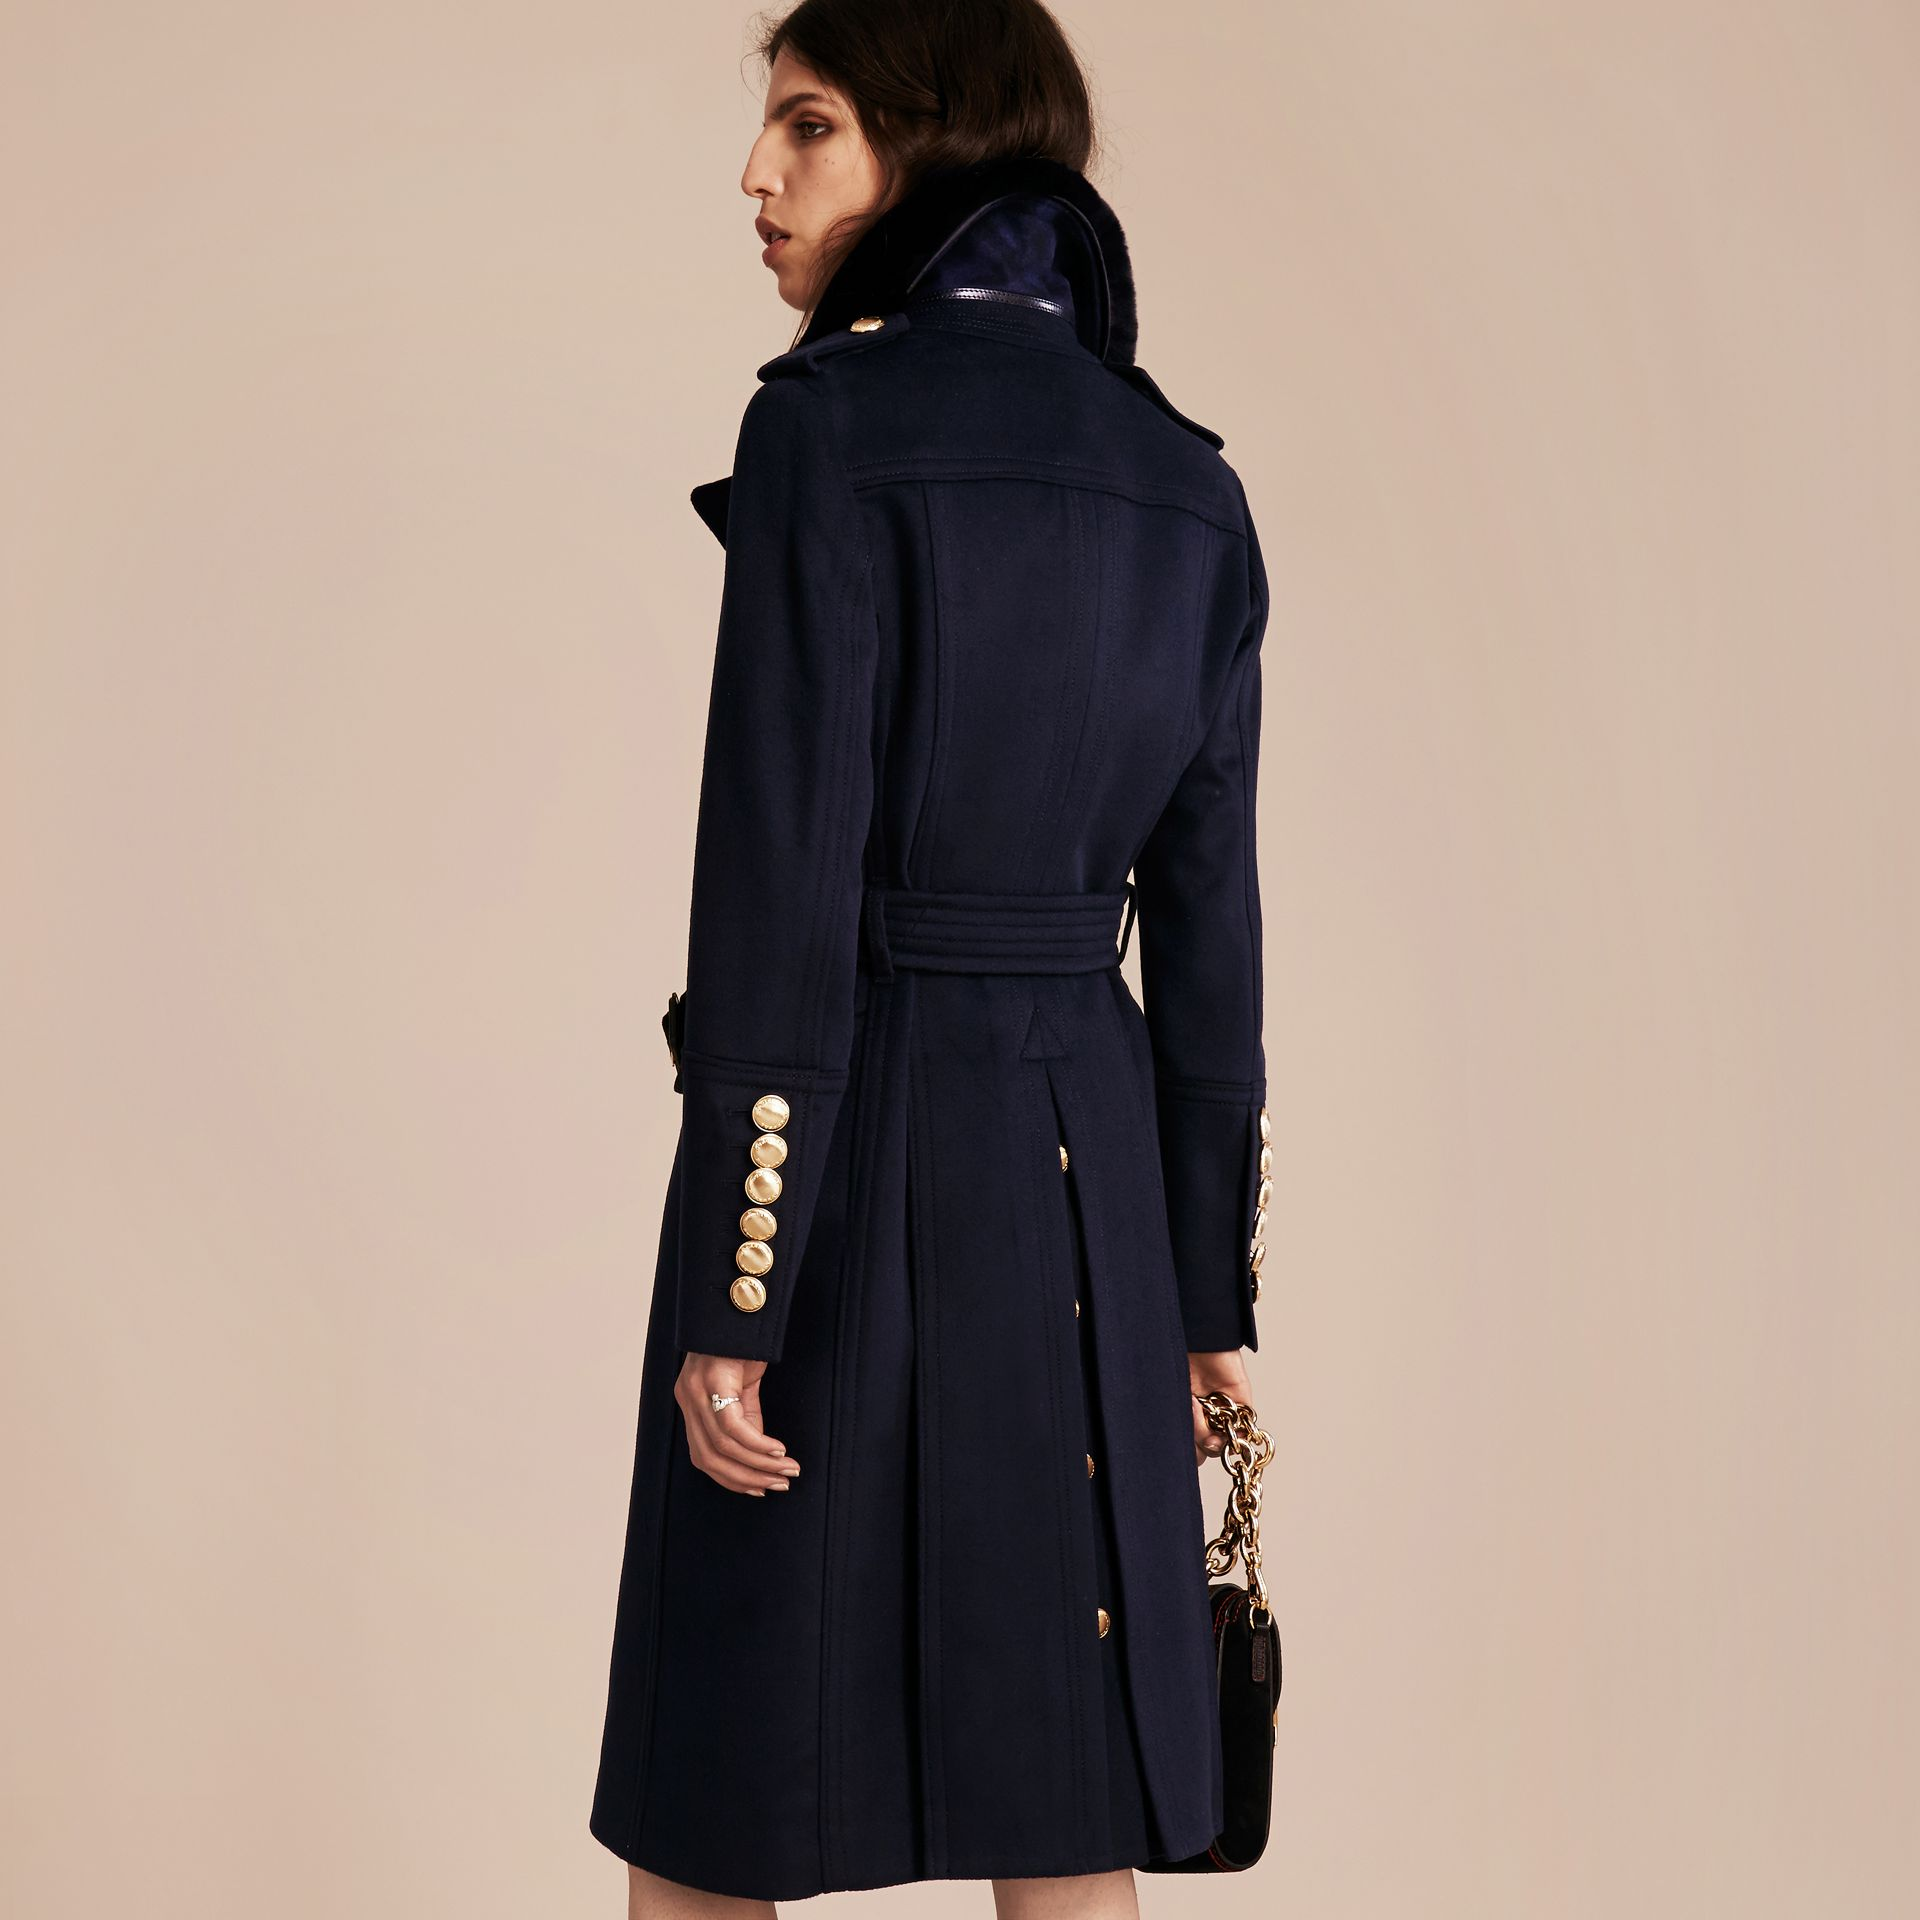 Navy Wool Cashmere Trench Coat with Detachable Fur Collar - gallery image 3